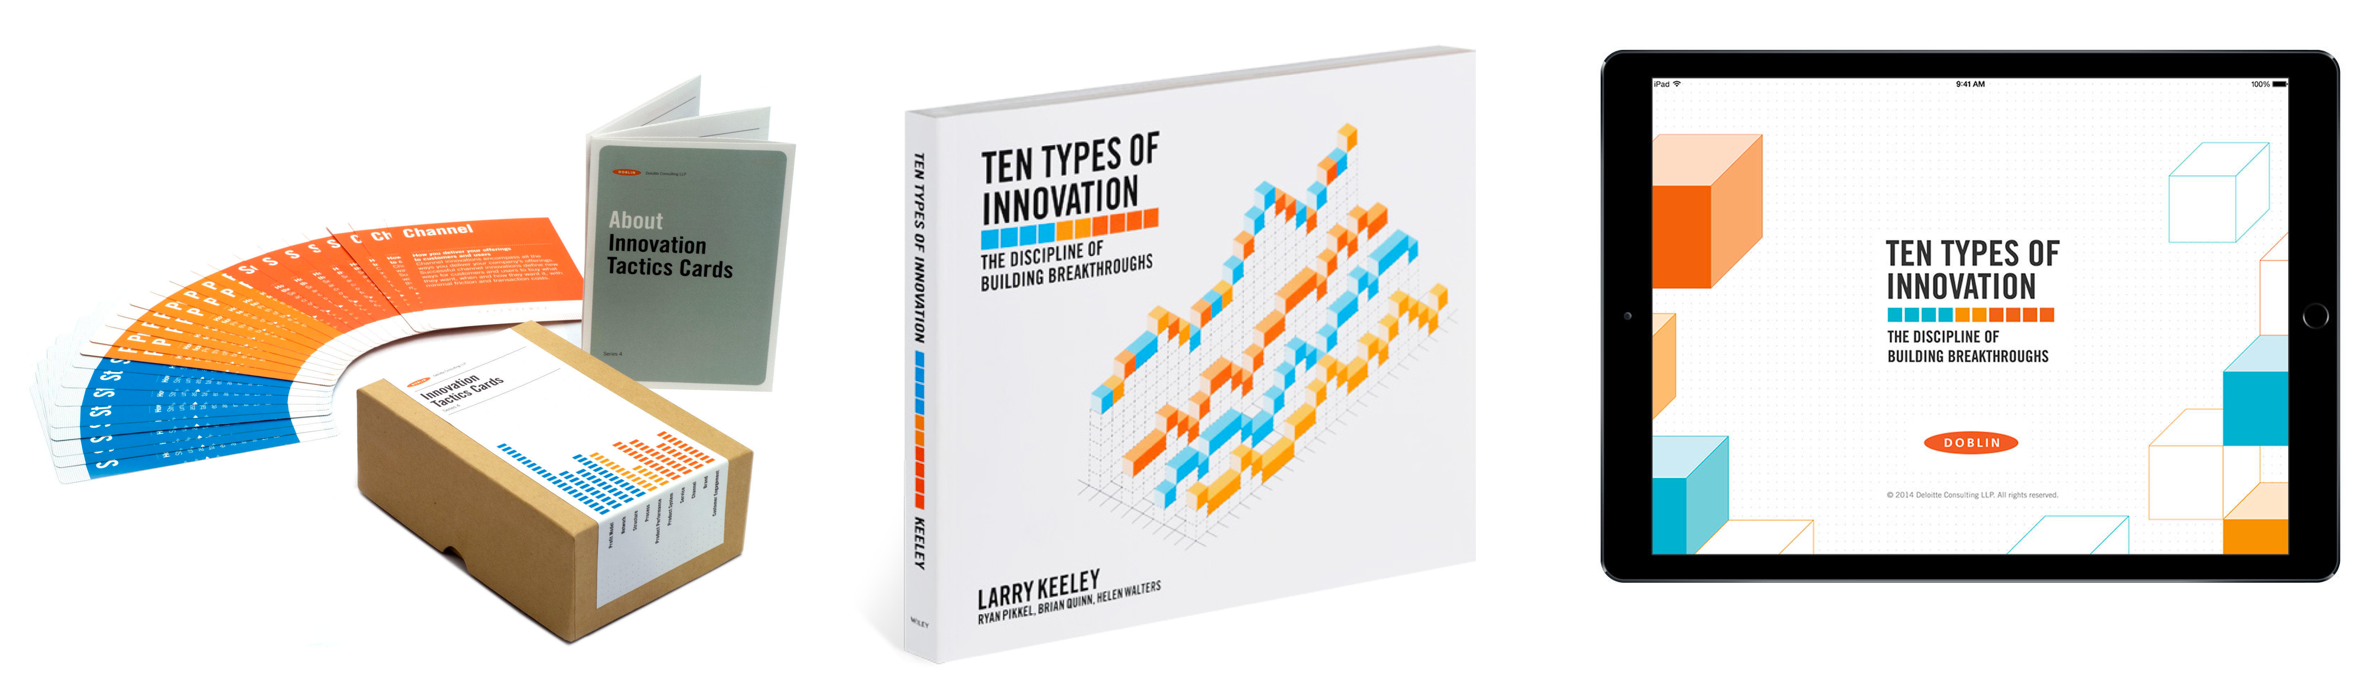 Ten Types of Innovation 1.png